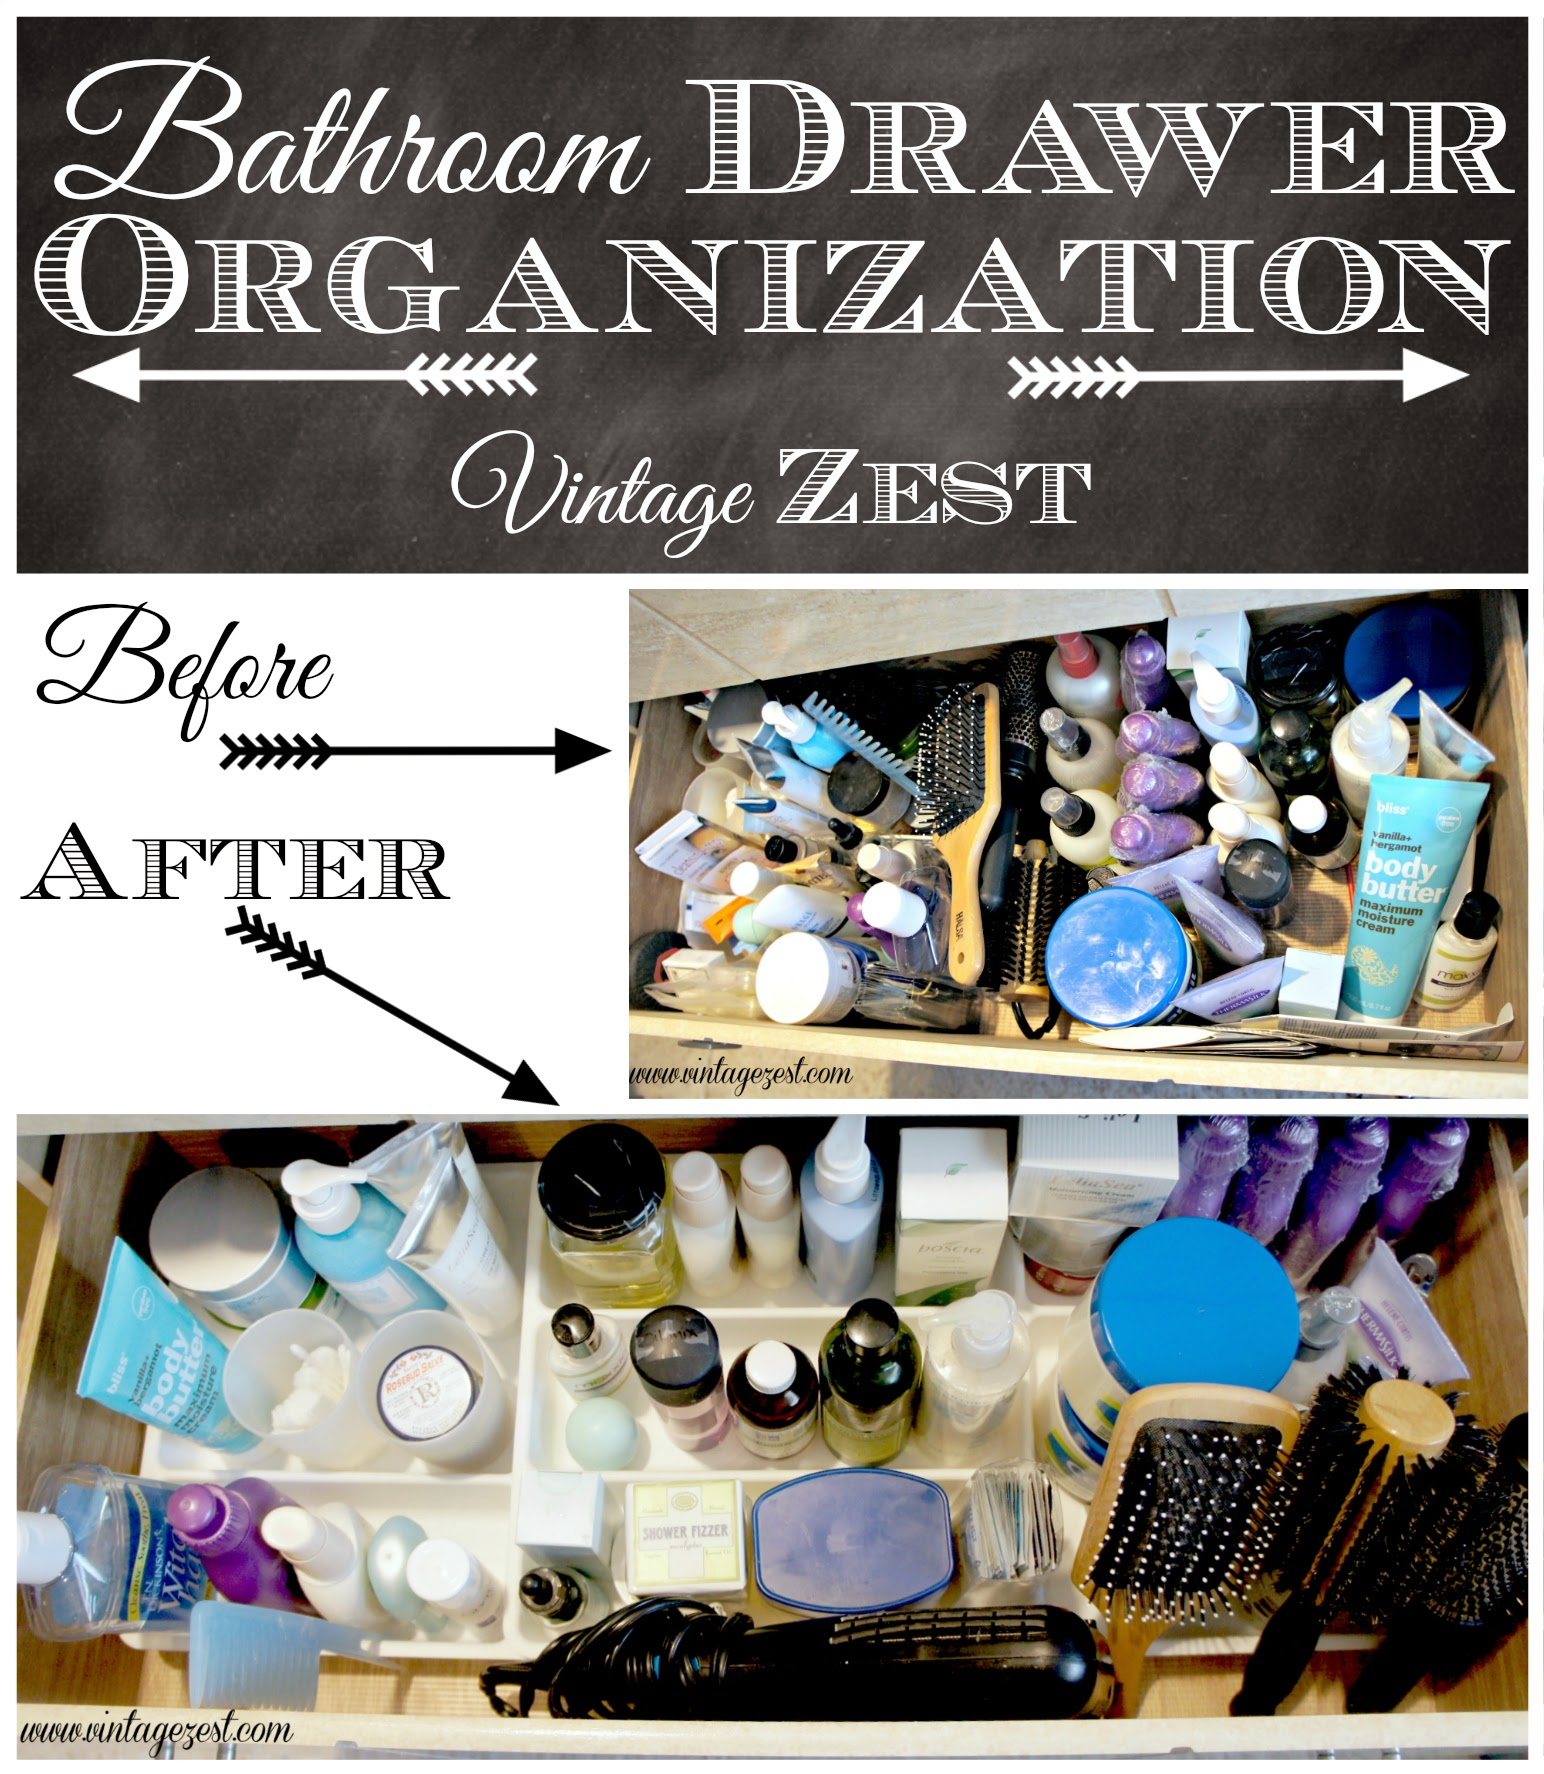 Organizing my Bathroom Drawer for Spring Cleaning! on Diane's Vintage Zest!